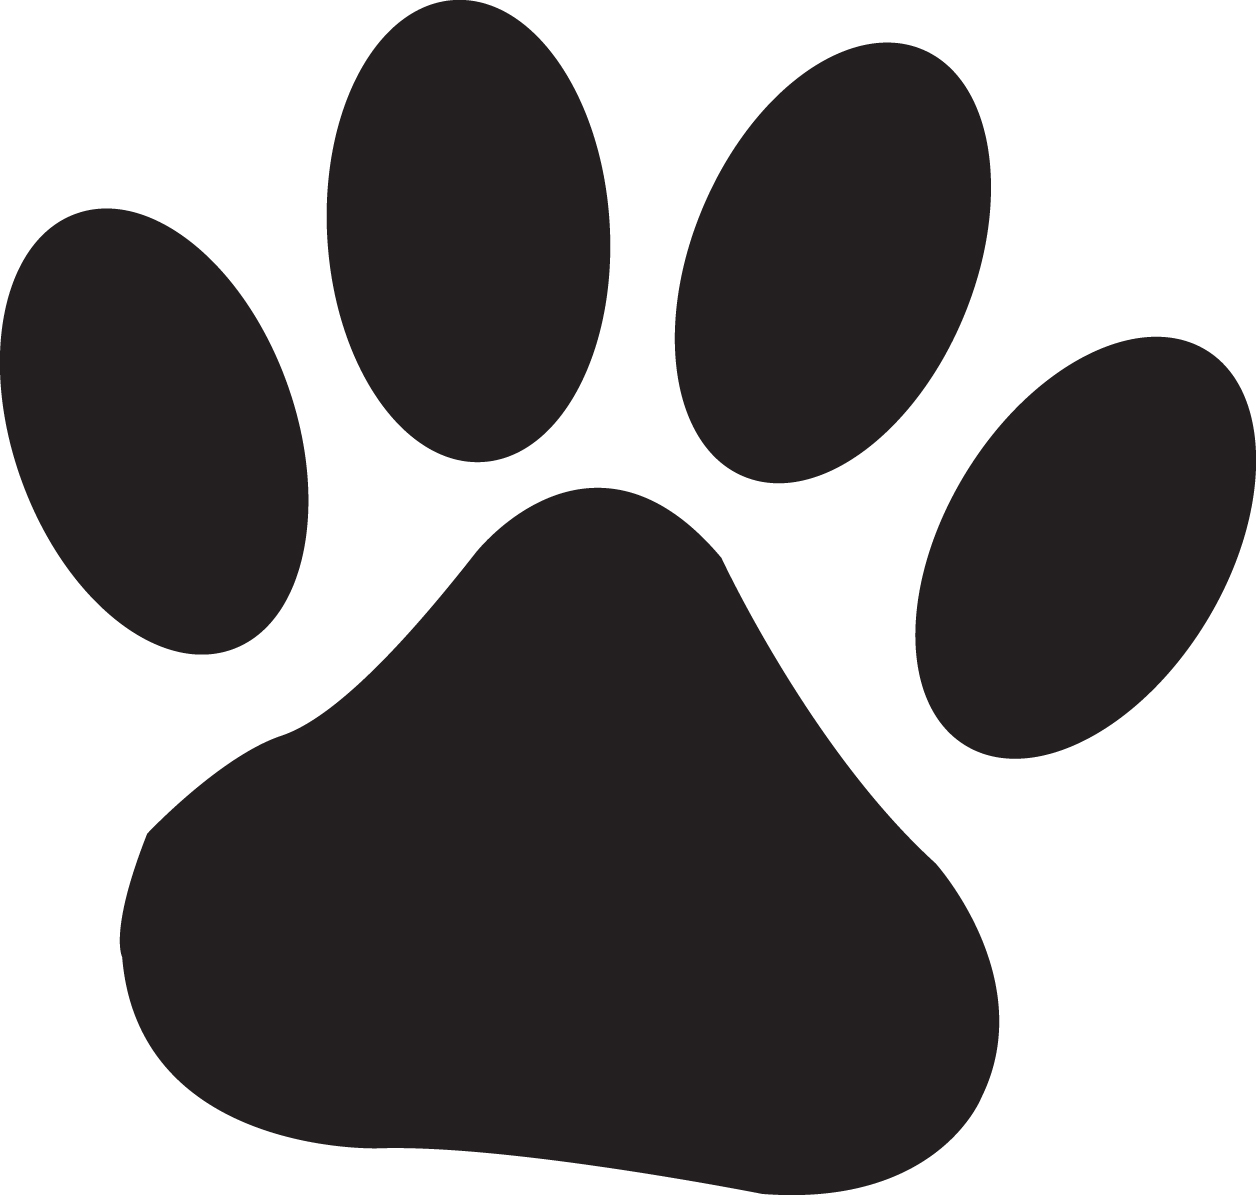 Free Cat Paw Prints Images, Download Free Clip Art, Free.